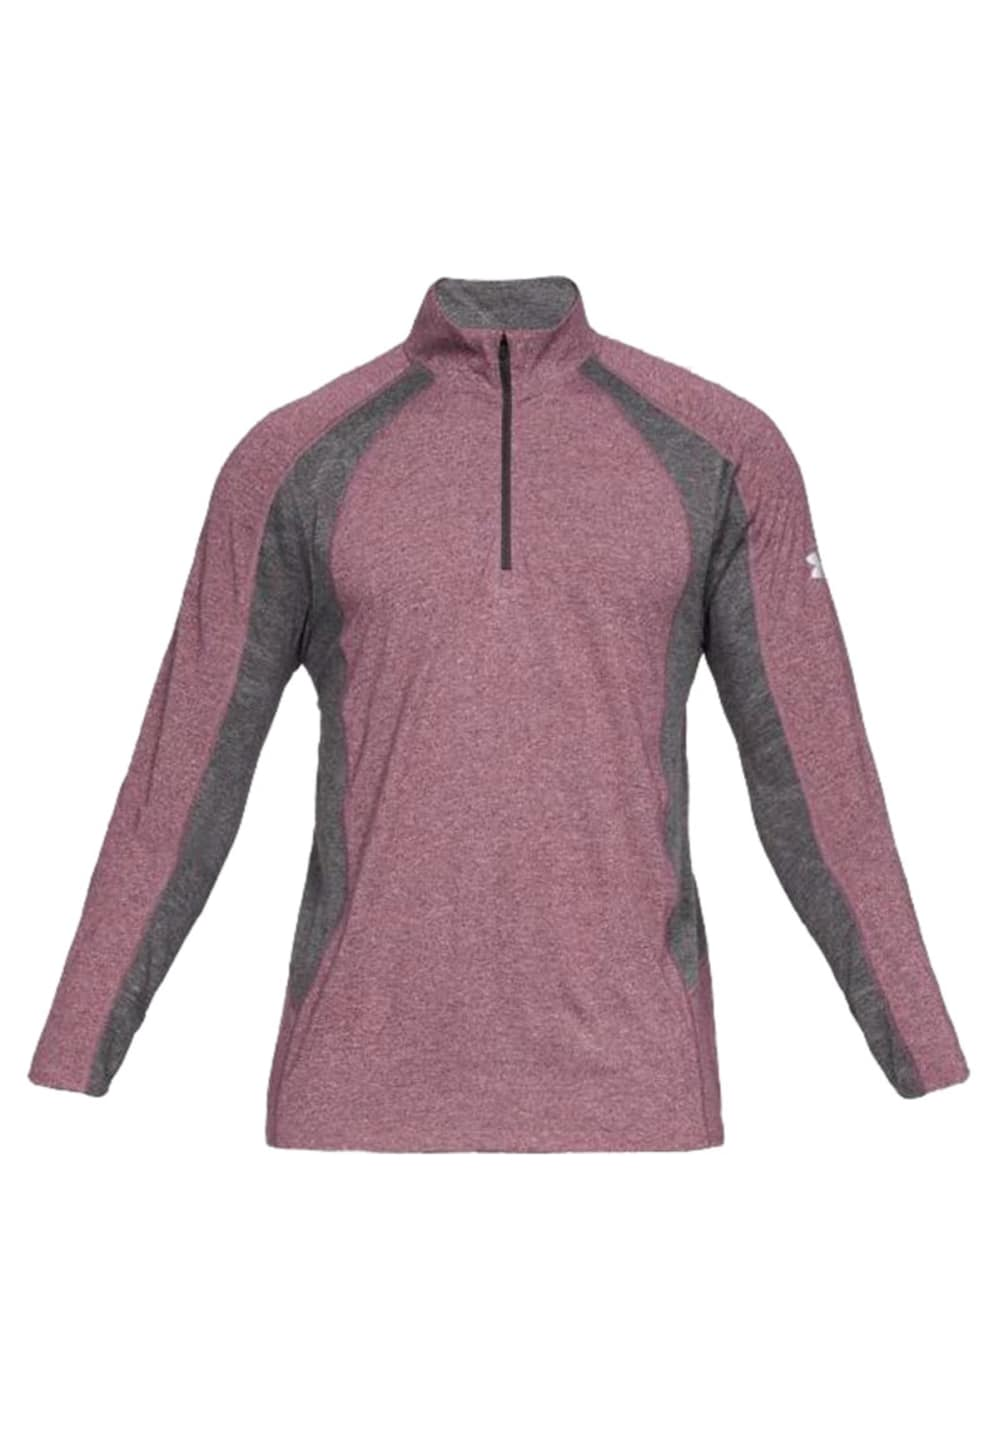 Under Armour Swyft 1/4 Zip - Laufshirts für Herren - Pink